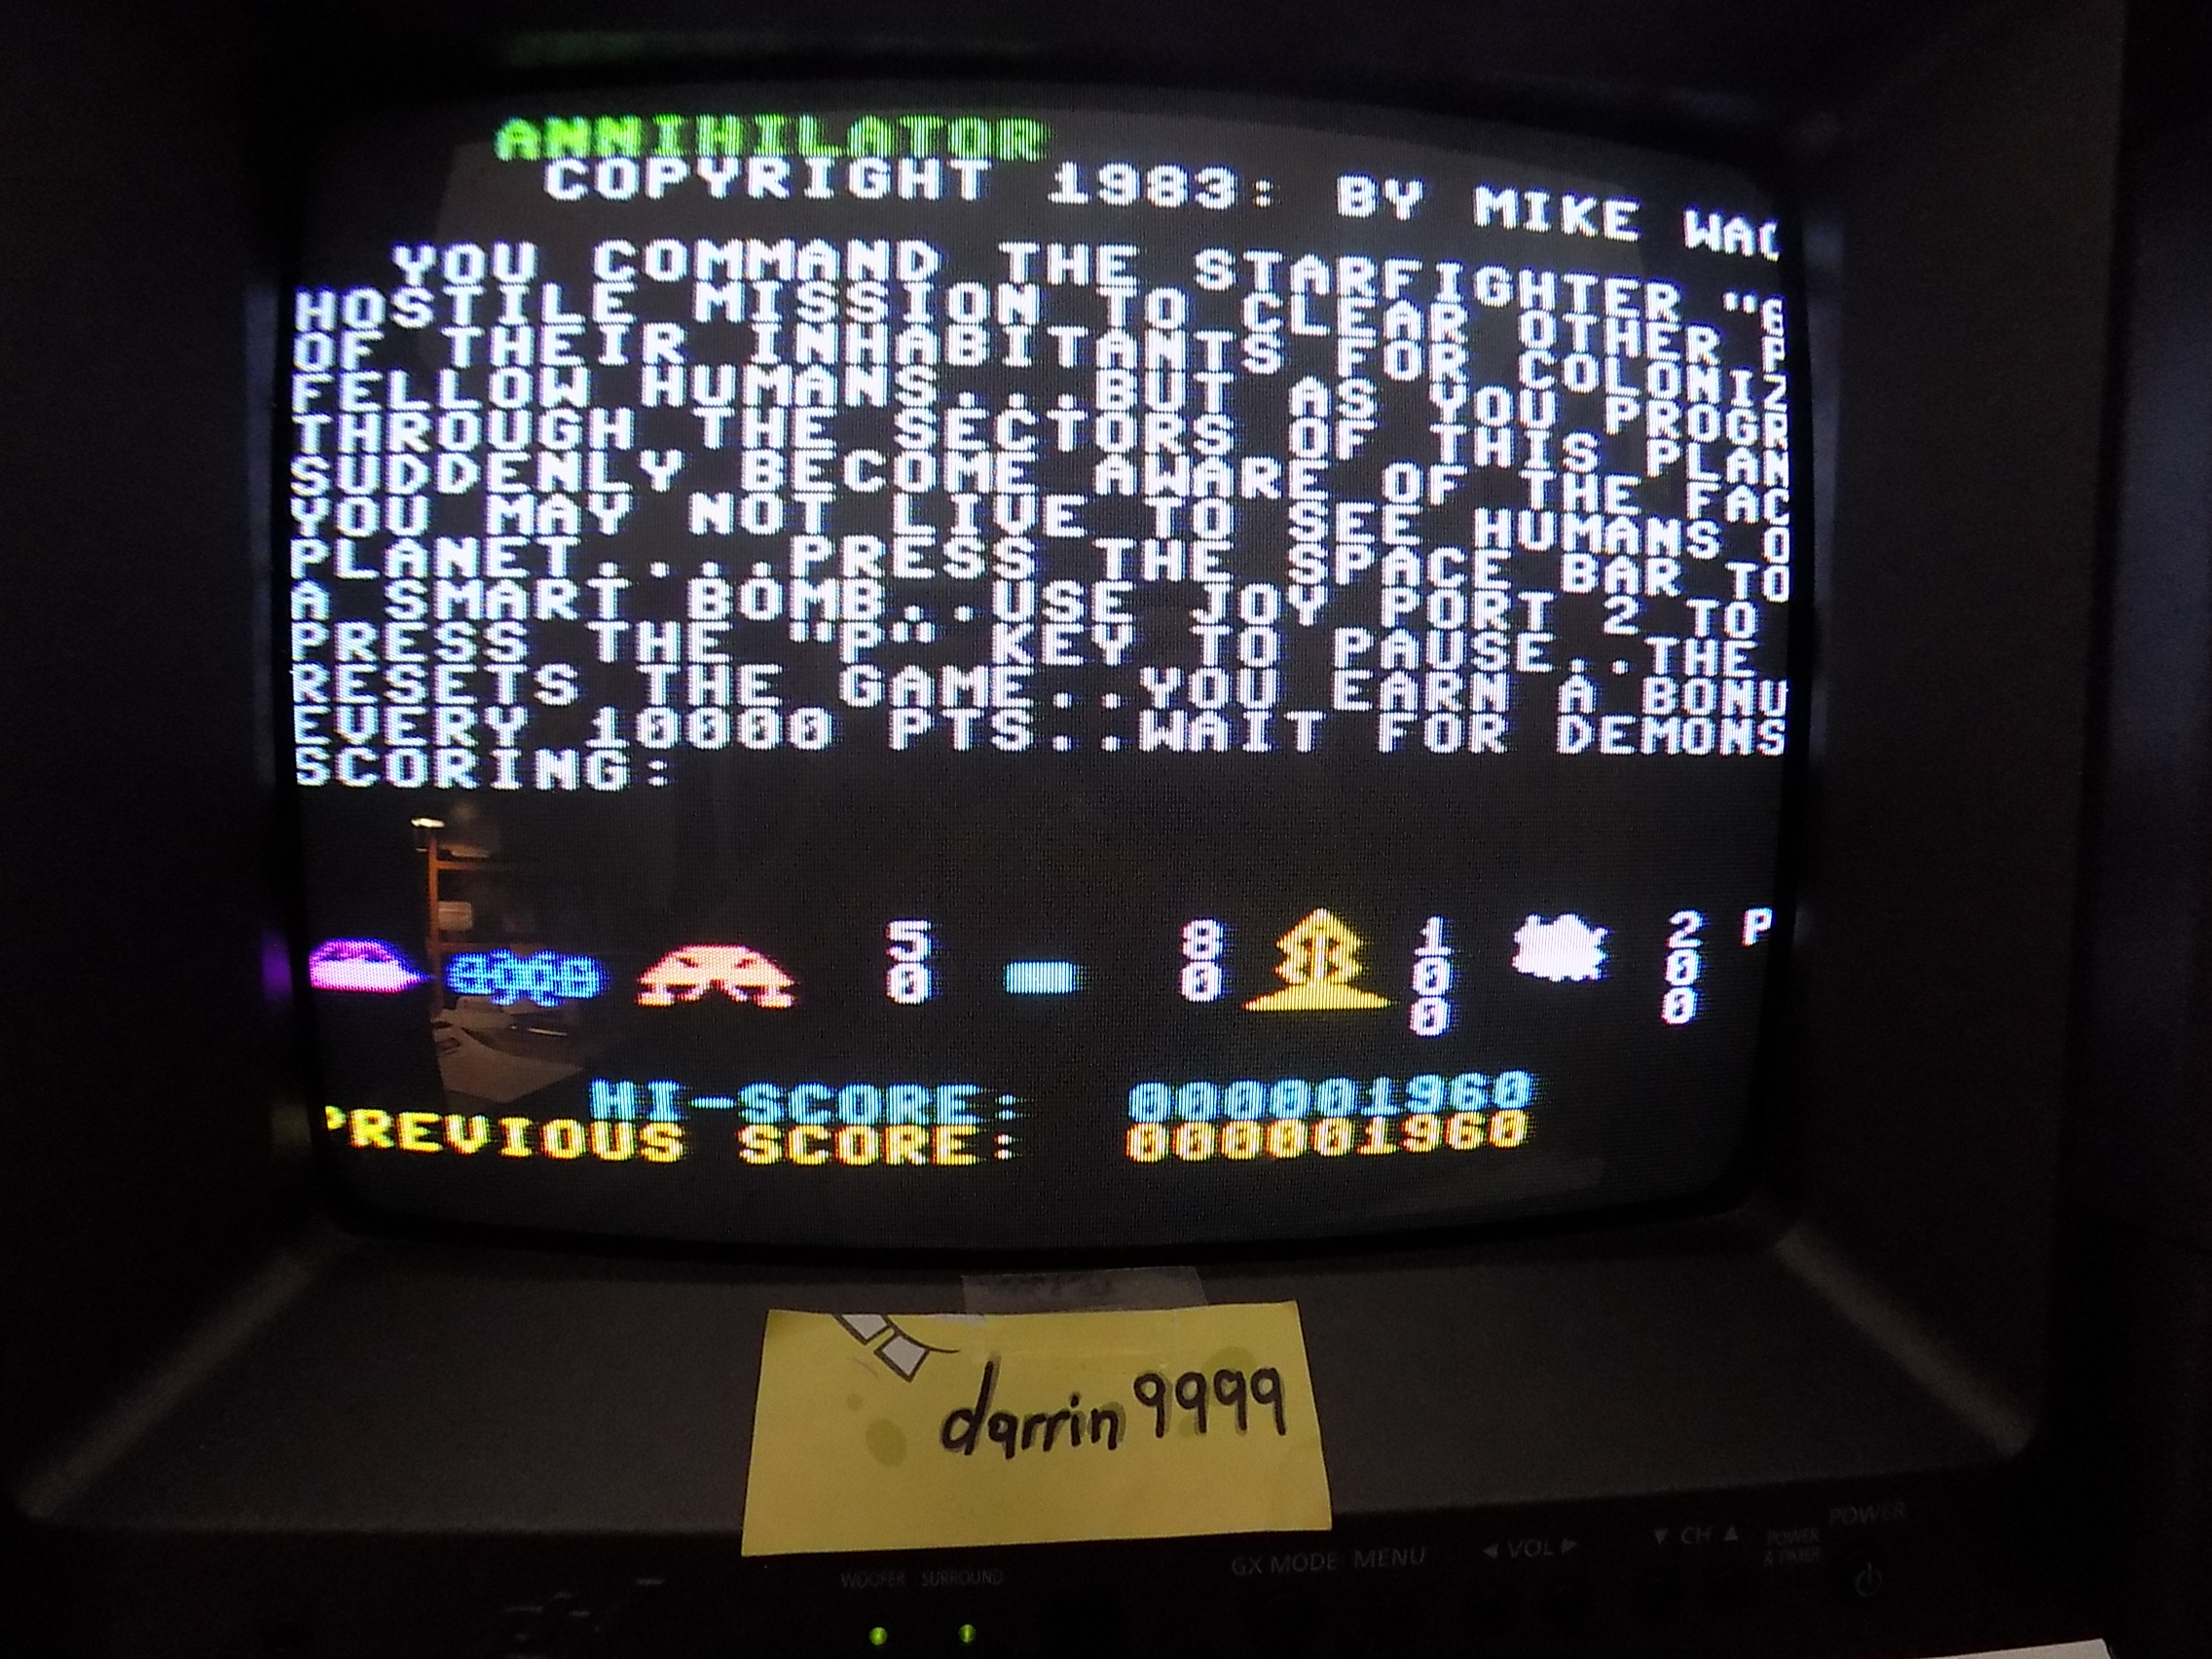 darrin9999: Annihilator (Commodore 64 Emulated) 1,960 points on 2019-08-20 15:56:39